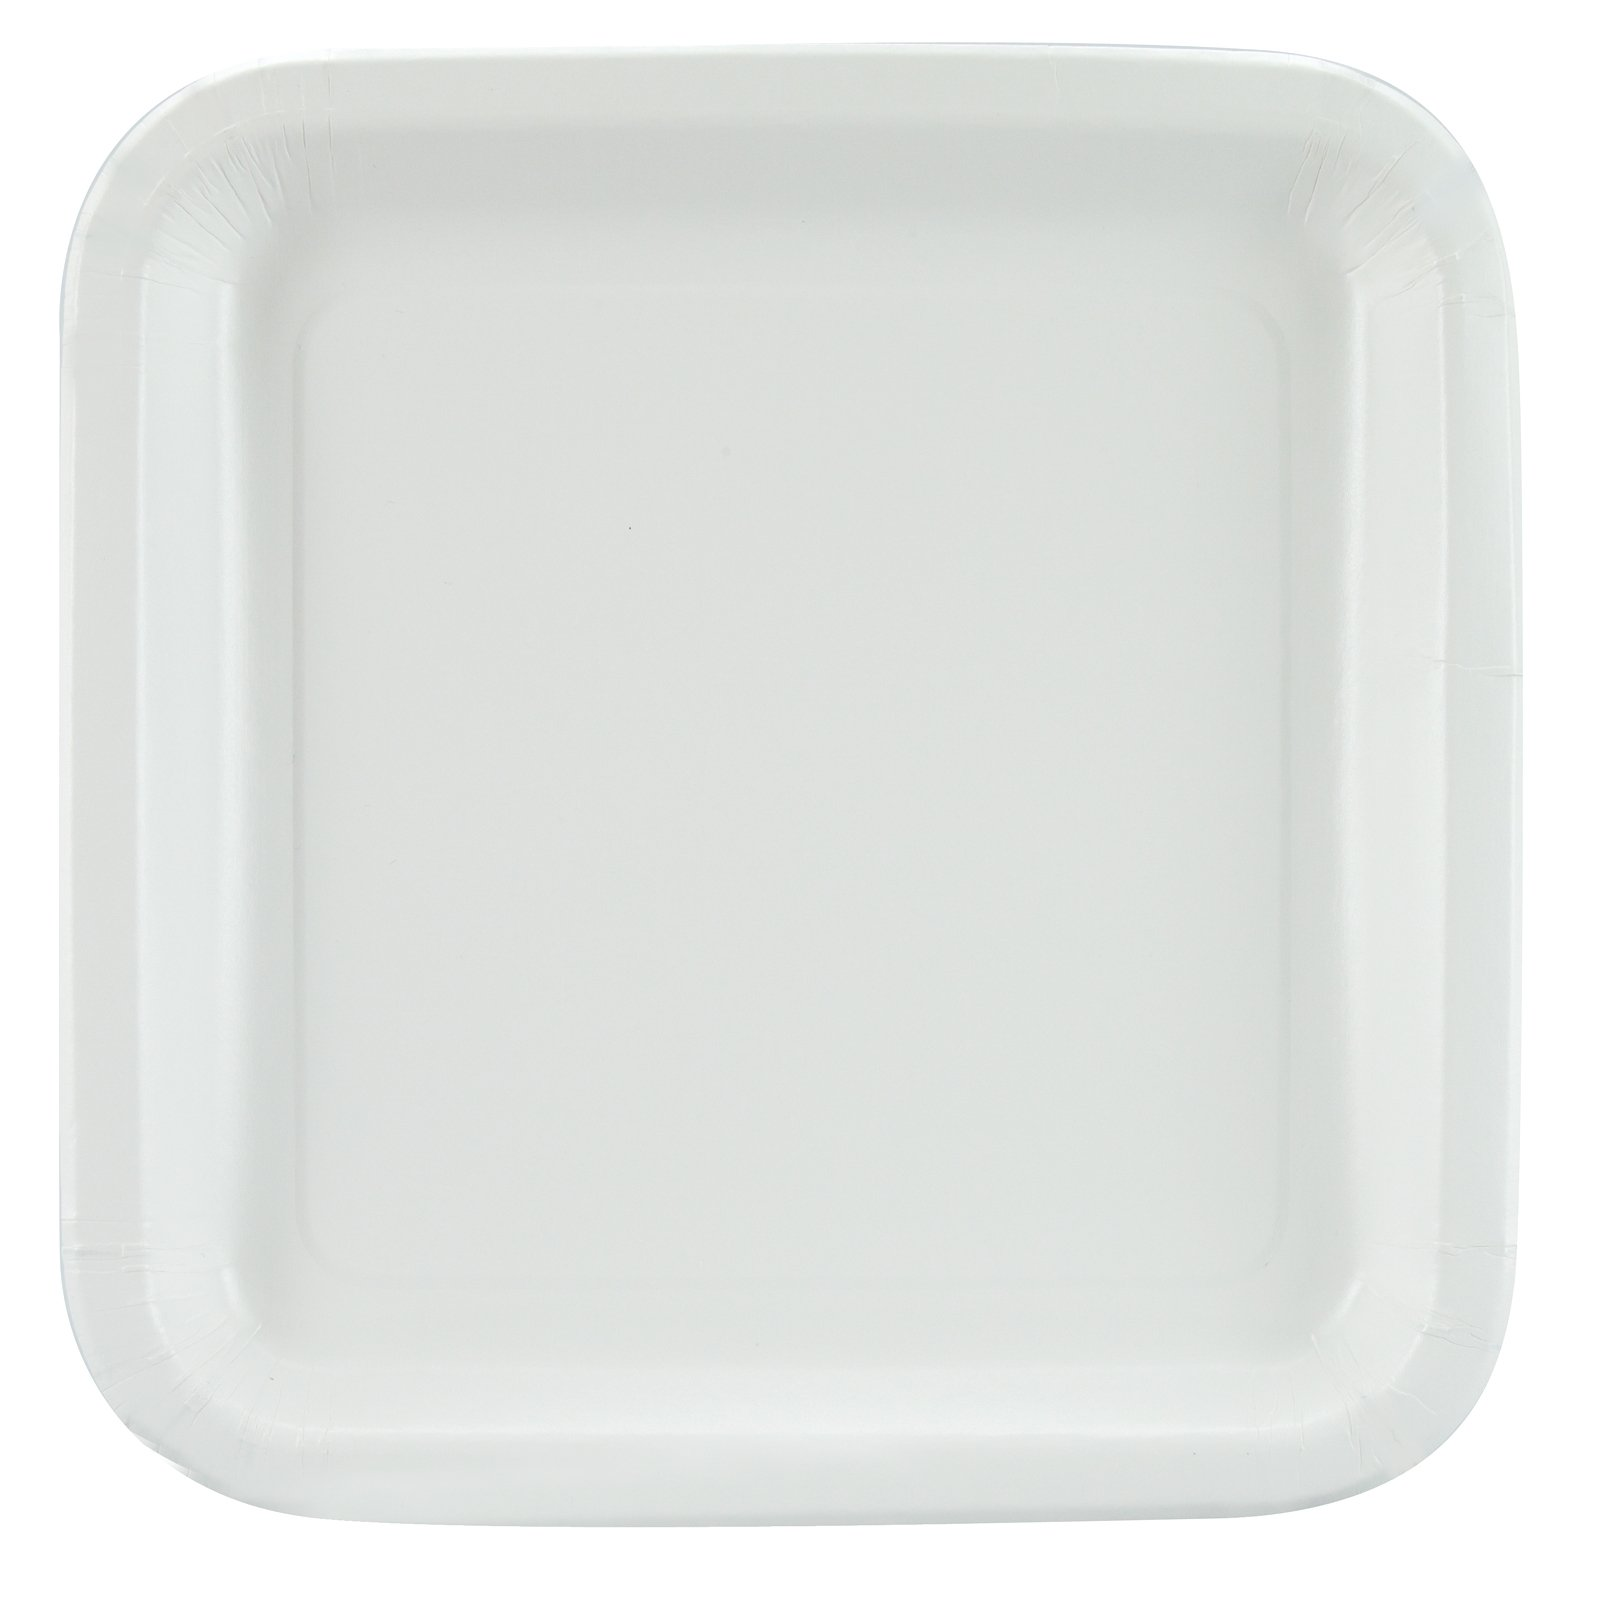 White Square Dinner Plates (12 count)